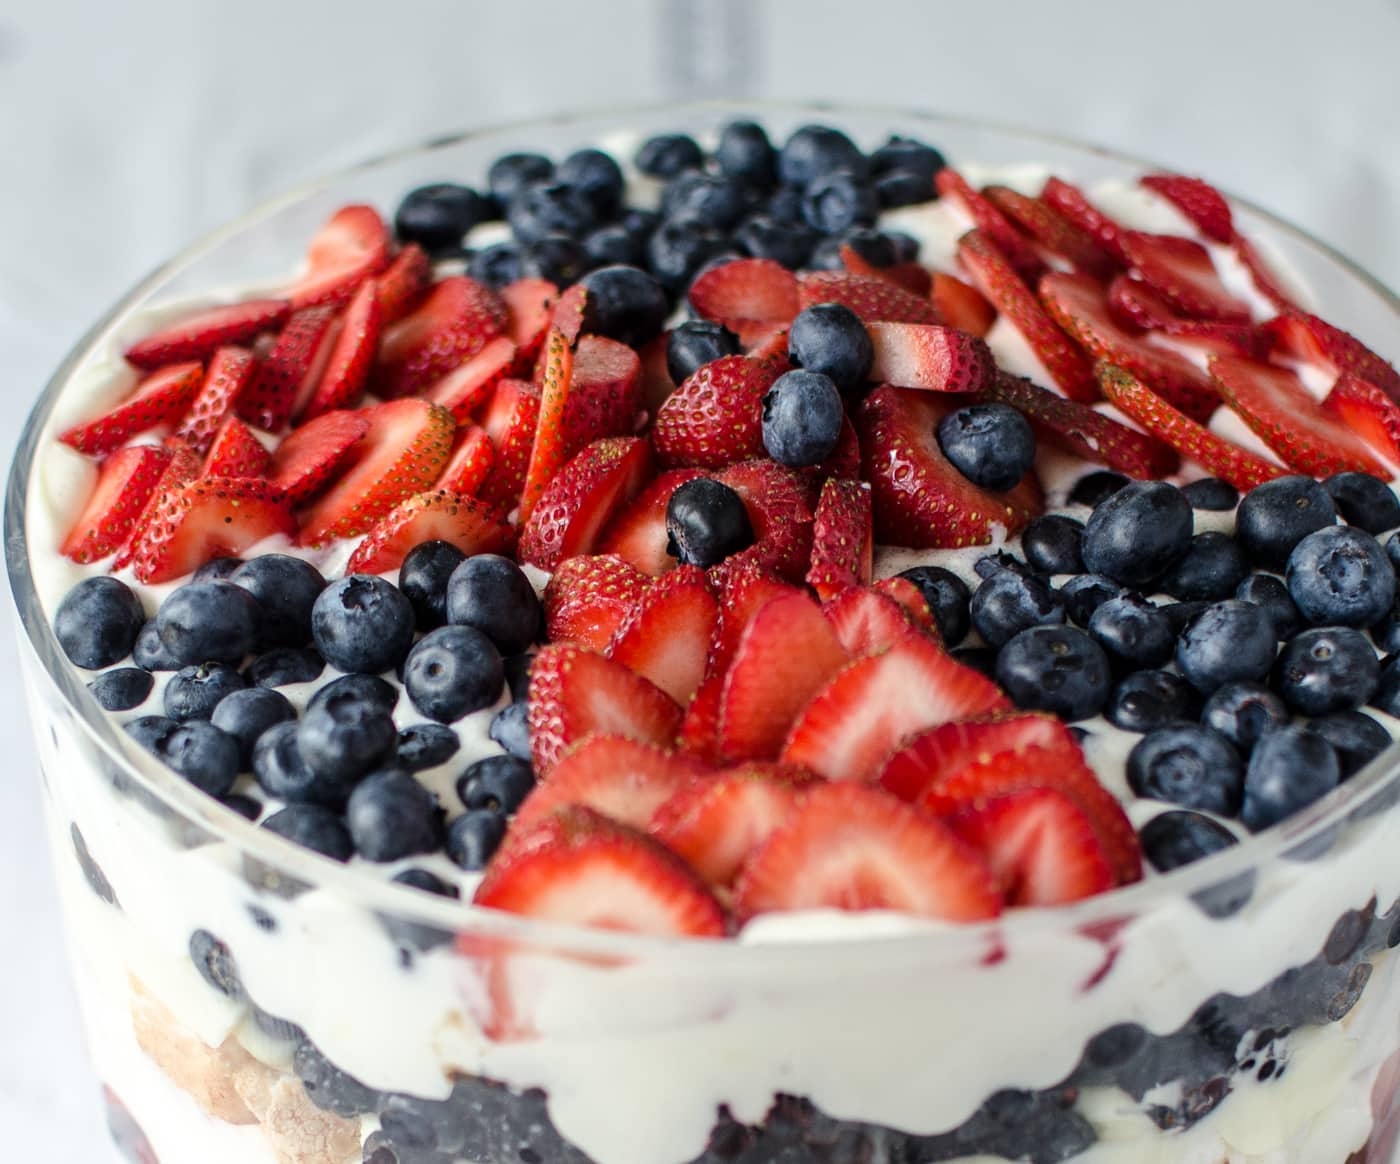 July 4th Recipe: Red, White, and Blue Trifle